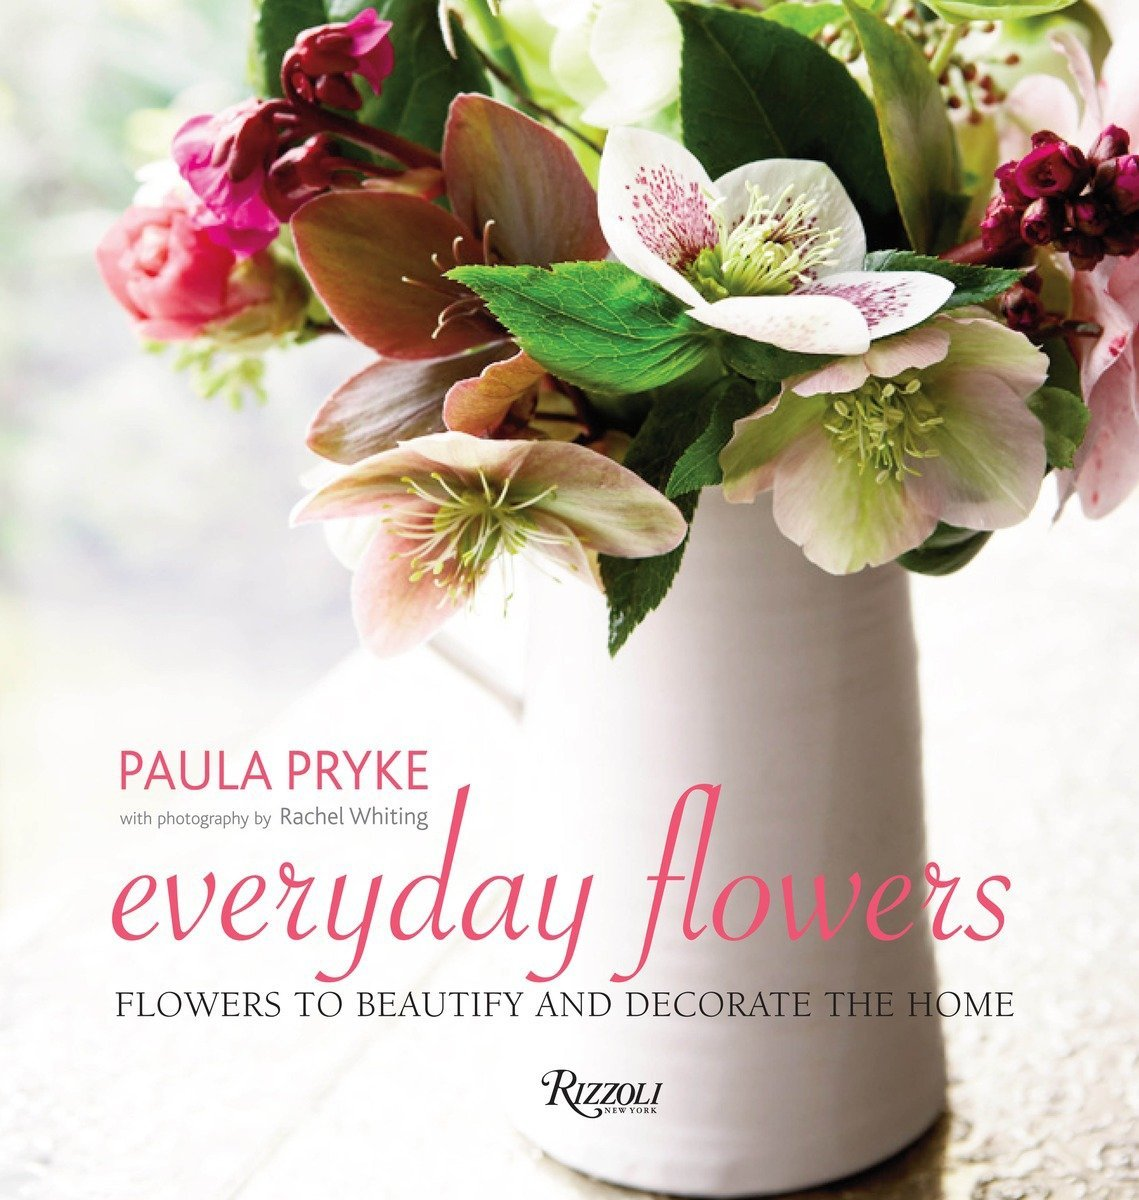 Everyday Flowers Flowers To Beautify And Decorate The Home Paula